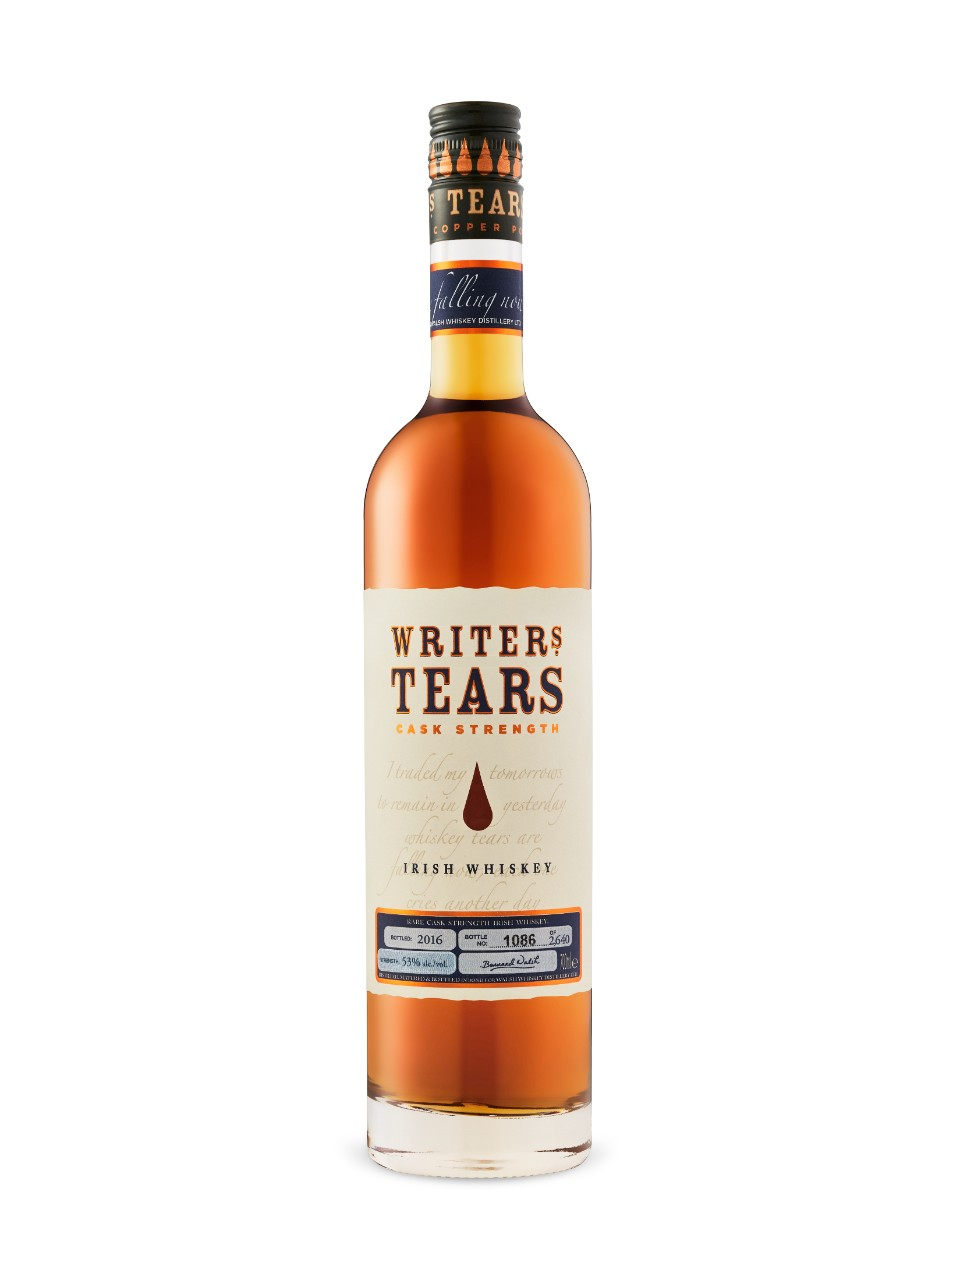 Writers Tears Limited Cask Strength Irish Whiskey